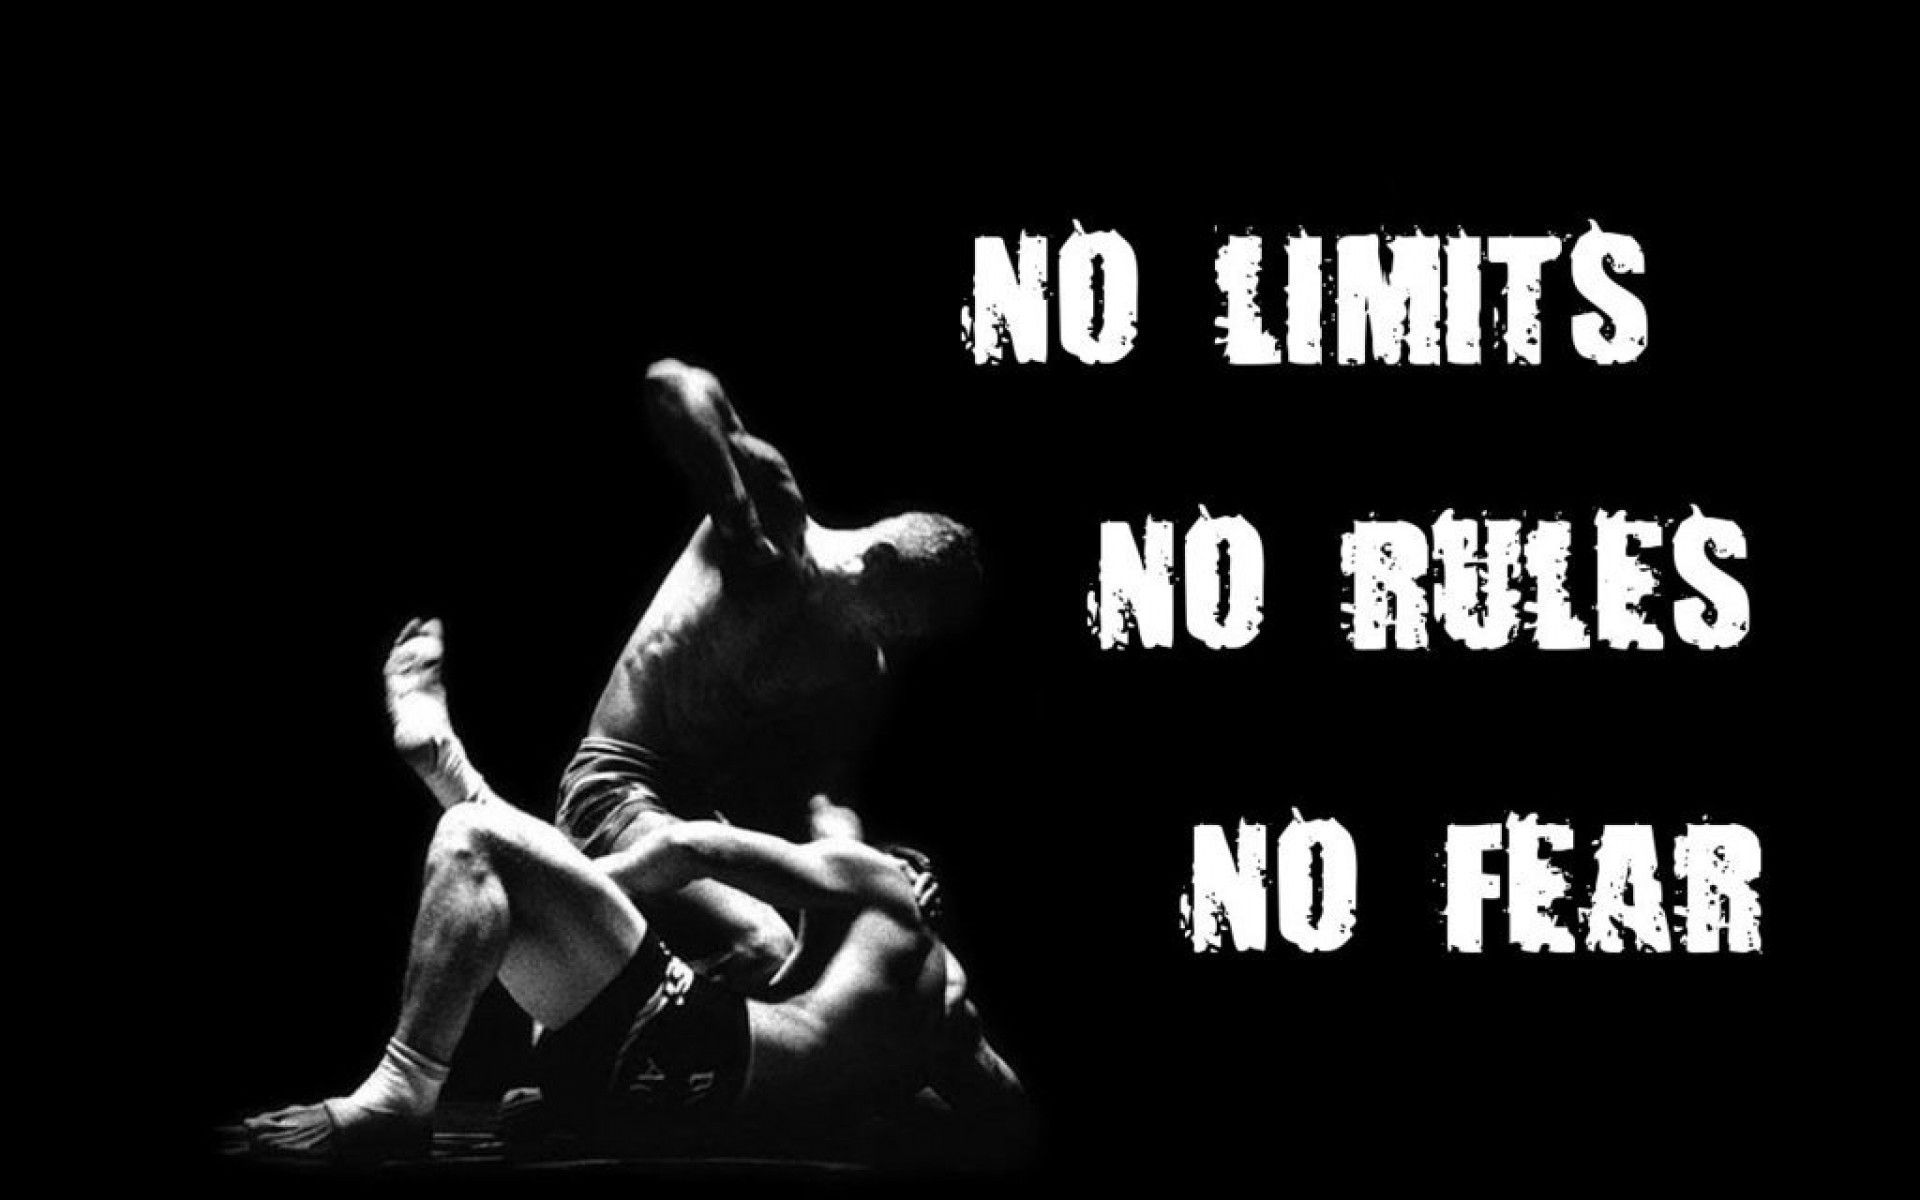 Inspiration For Anything Foll Us And Click The Image For More Great Inspiration Articles On Our Website Inspiration Diygods Karate Fight Kids Mma Mma